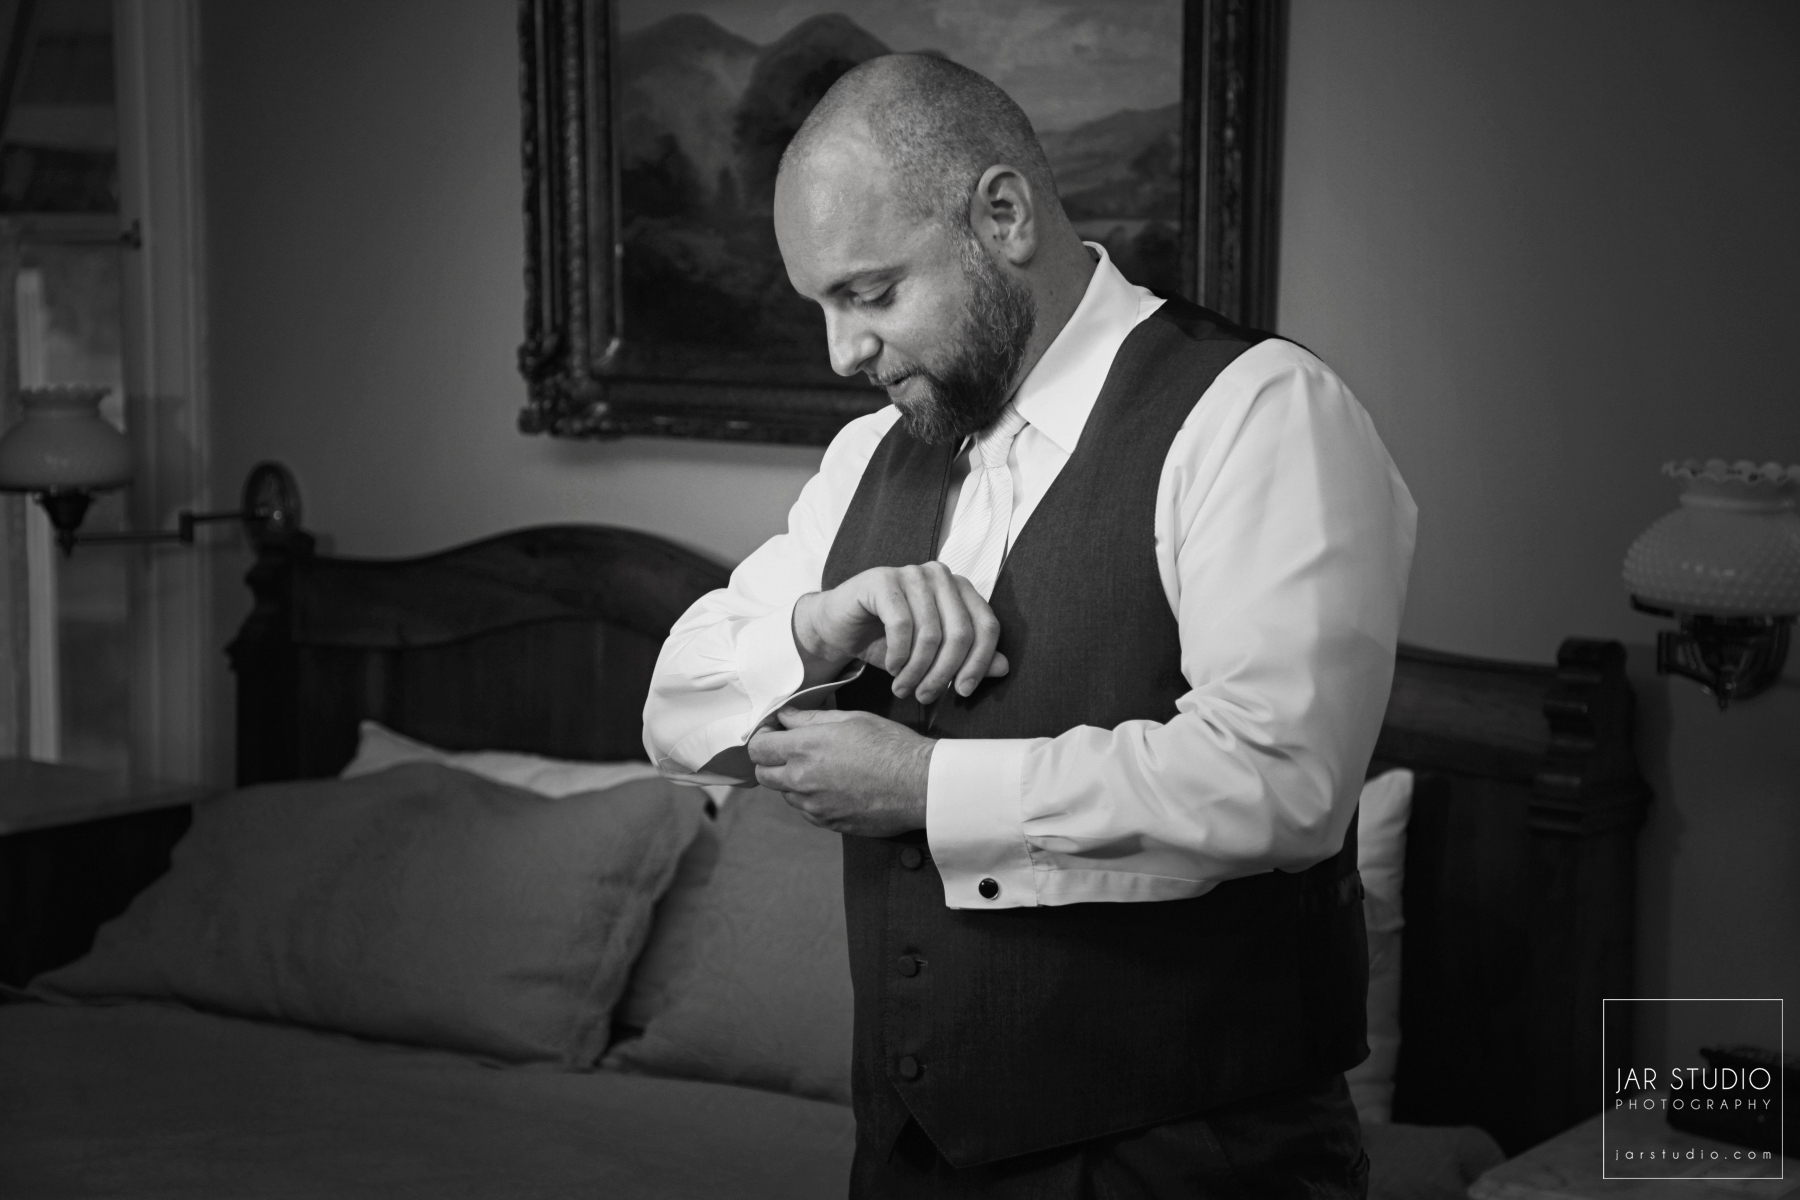 07-elegant-dr-phillips-house-groom-jarstudio-photography.JPG